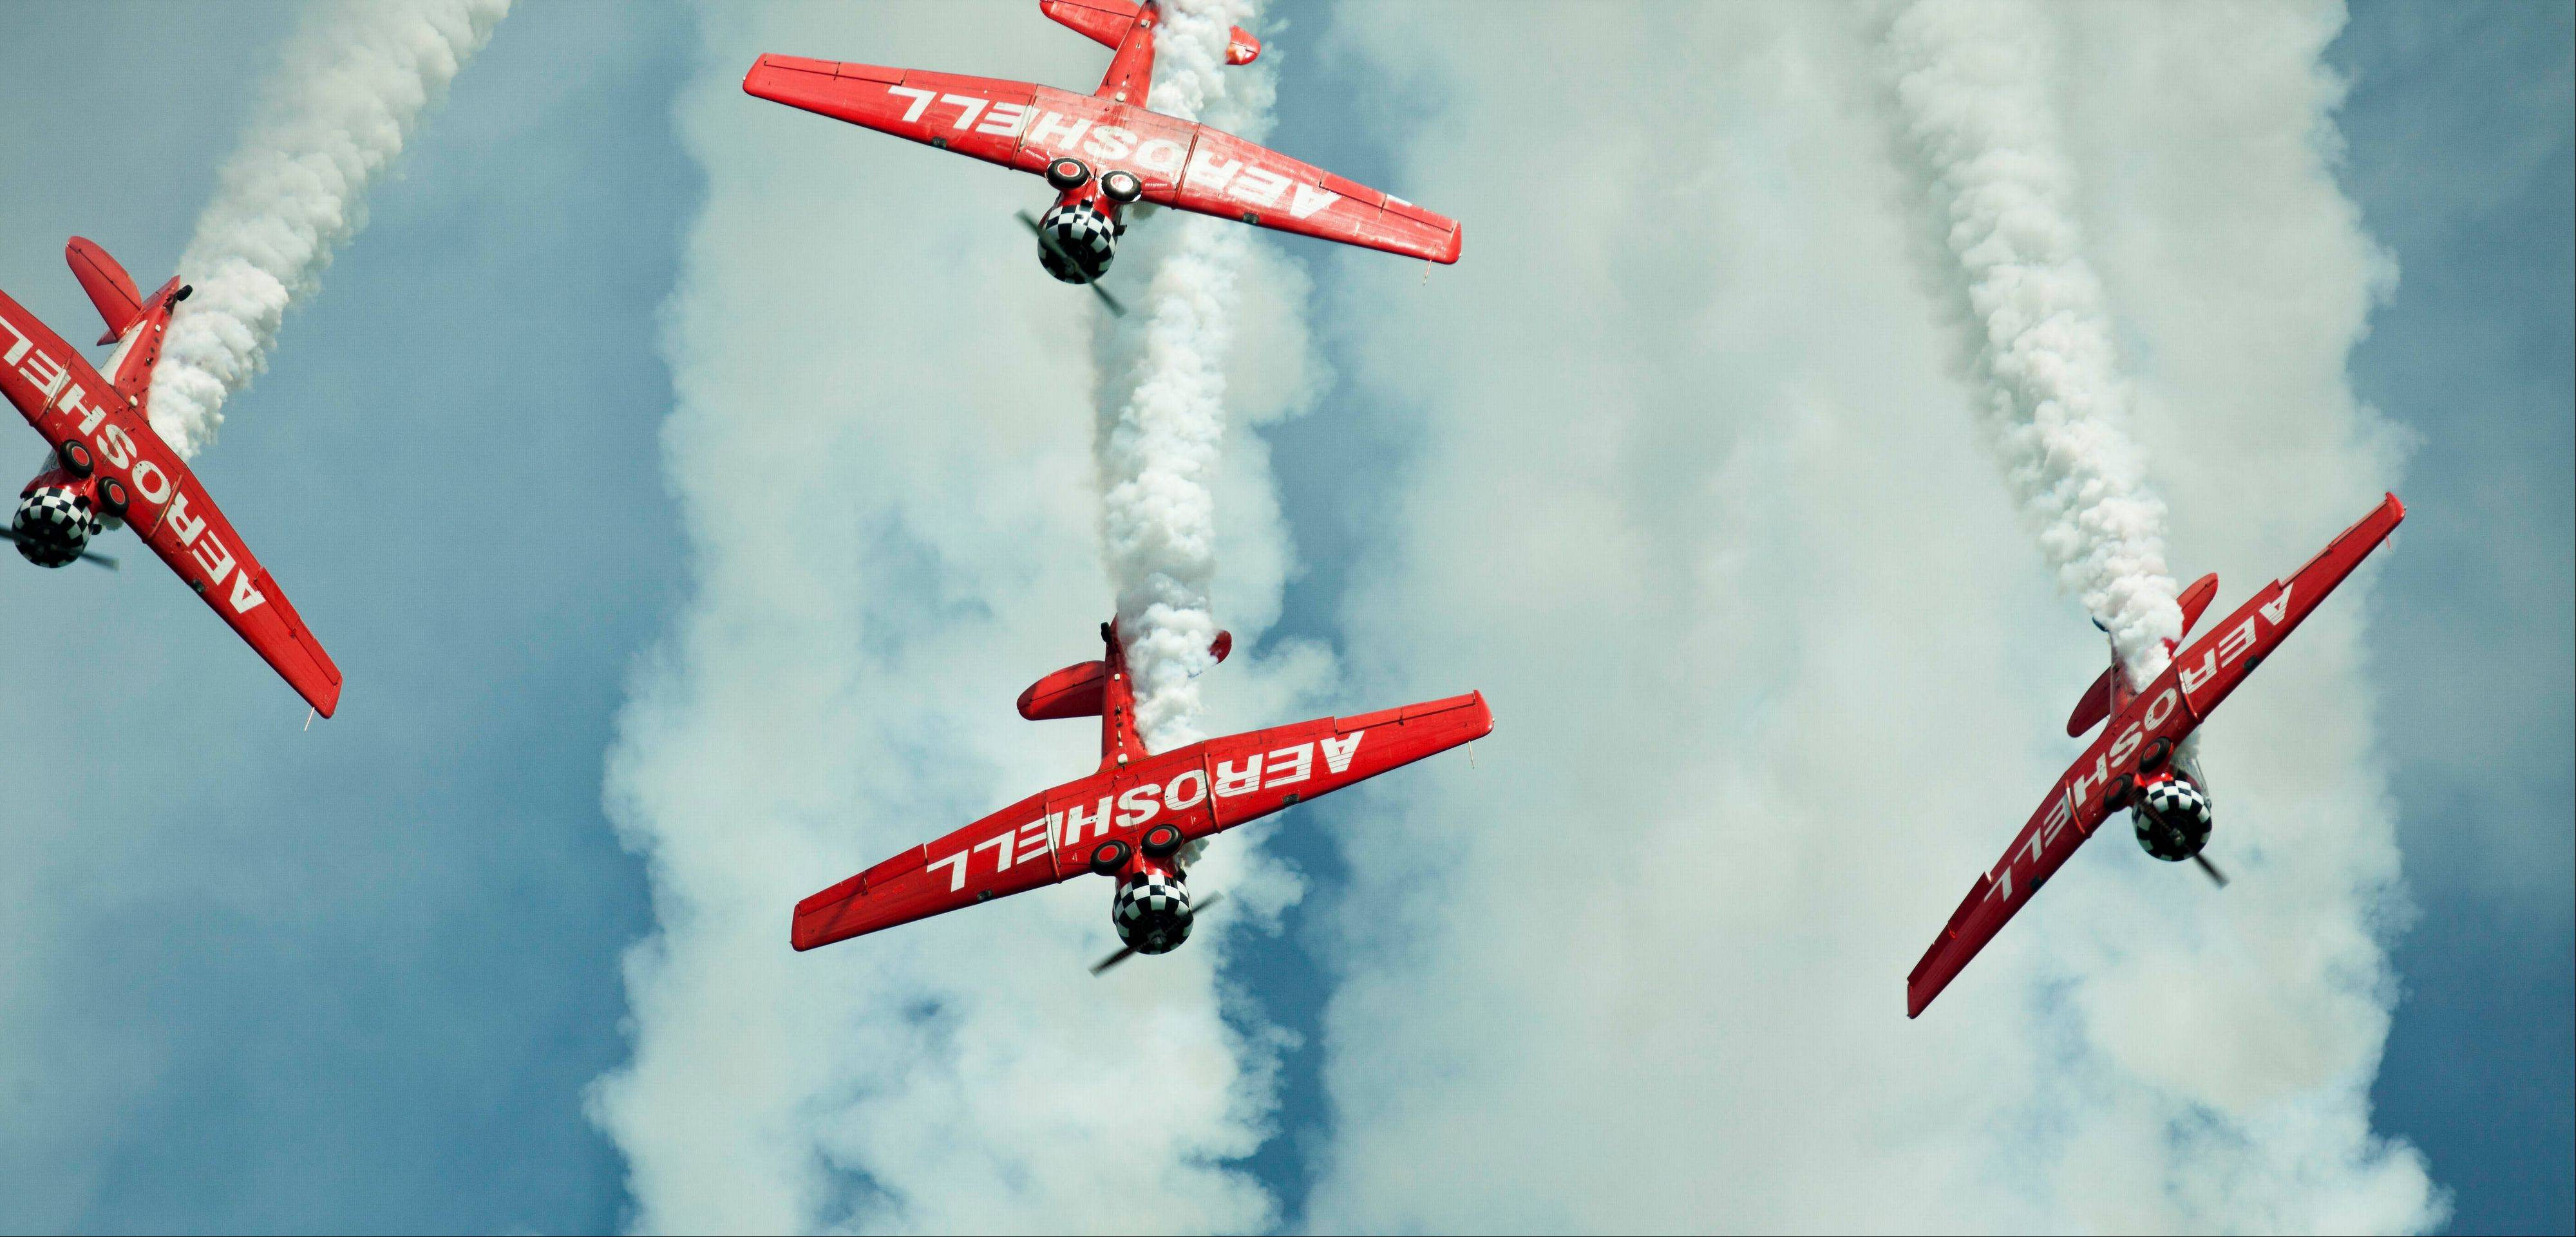 The Aeroshell Aerobatic Team performs on the opening day of the Chicago Air and Water Show on Saturday, Aug. 18, 2012 in Chicago.